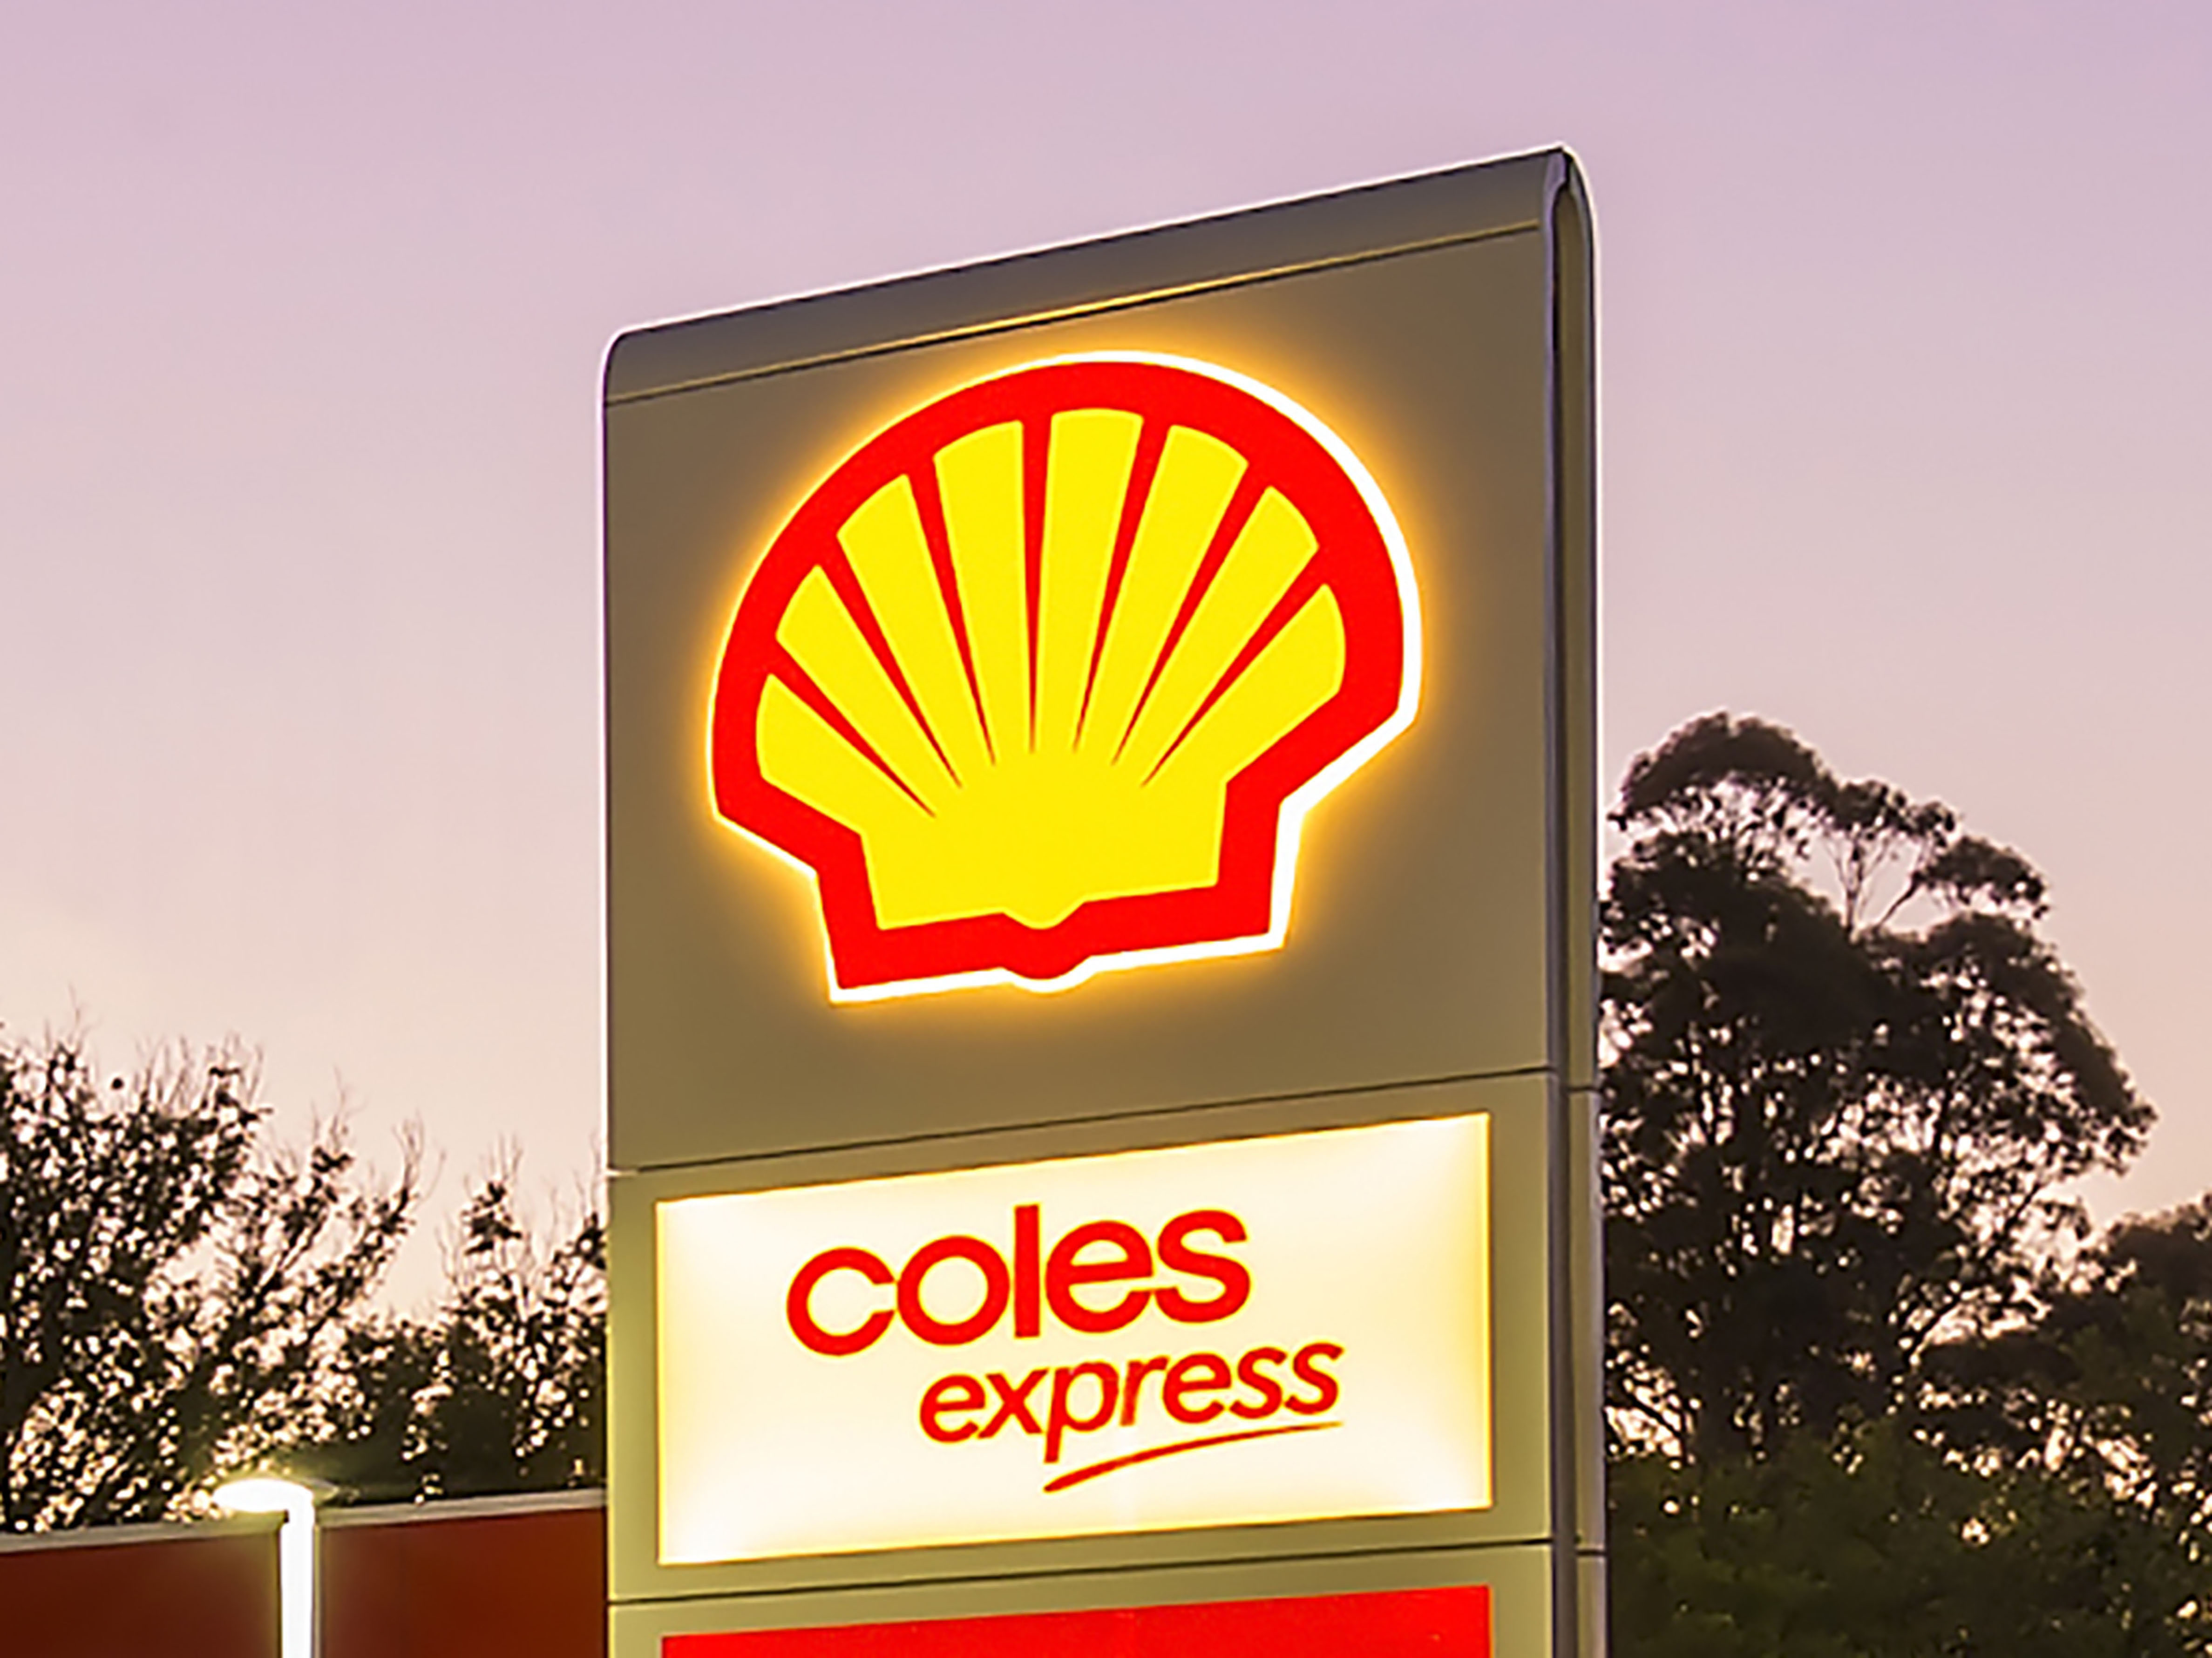 Strategic Coles Express Investment